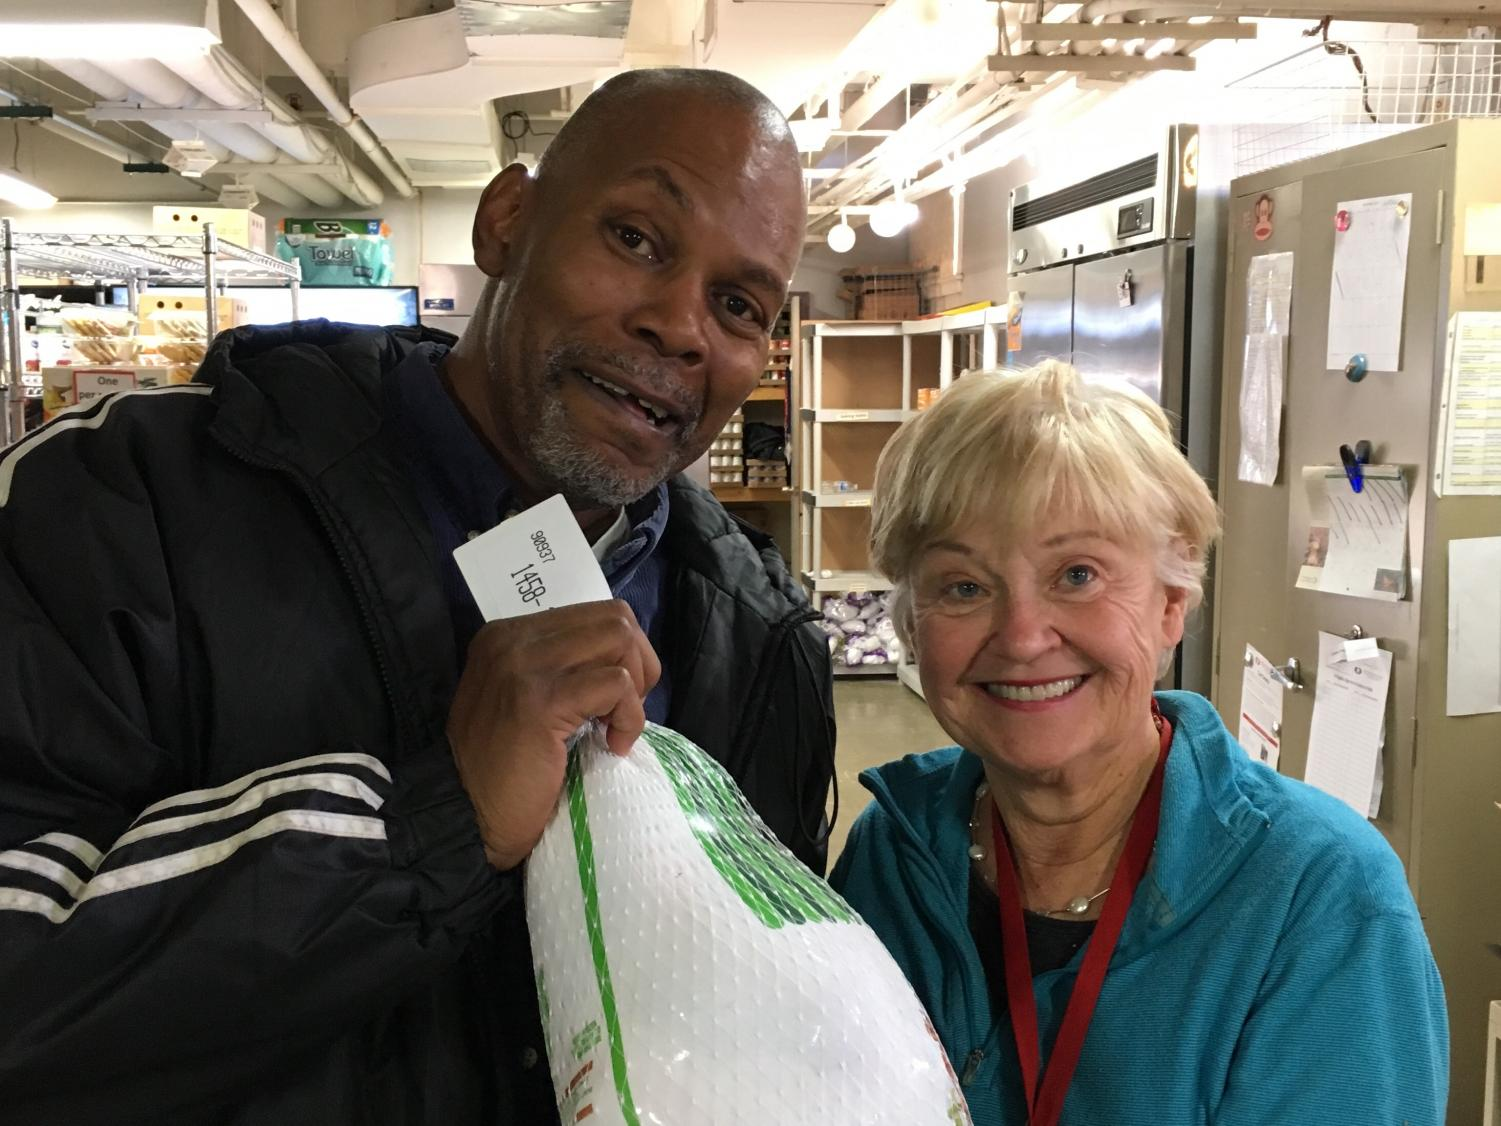 Both the Hinsdale food pantry and the Anne M. Jeans food pantry offer volunteer opportunities to help DuPage County residents in need.